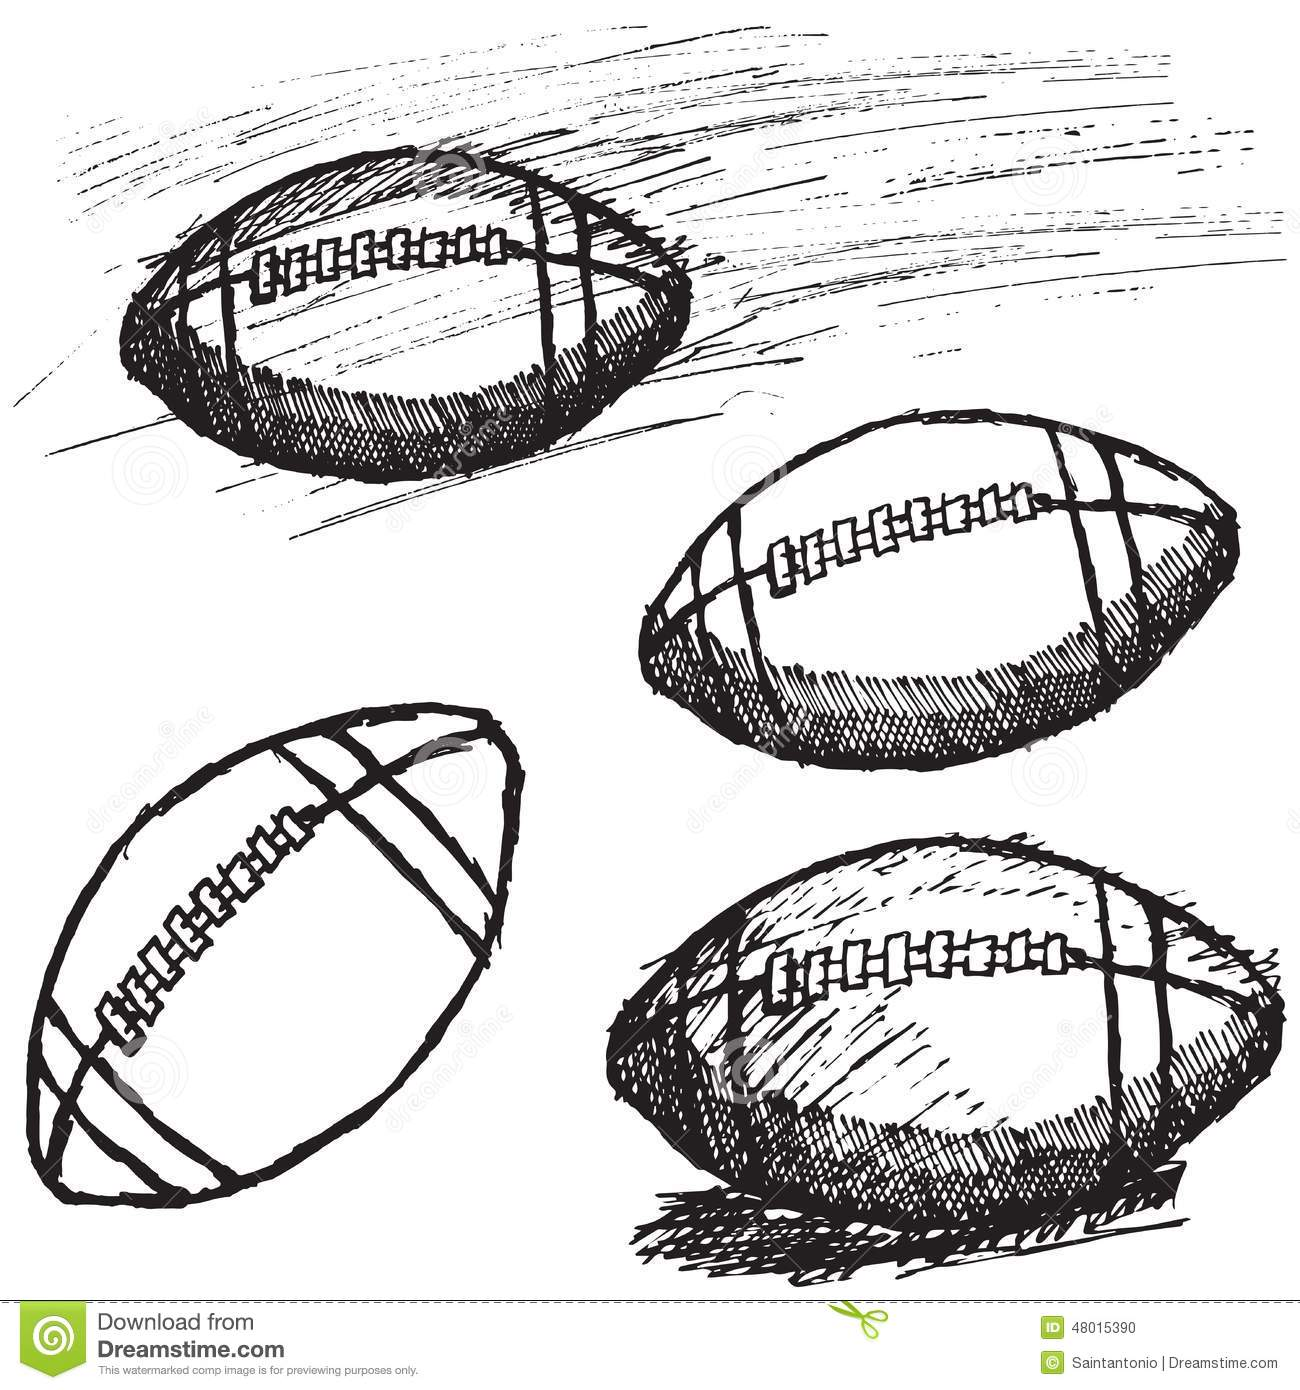 American Football Sketches | Www.pixshark.com - Images Galleries With A Bite!